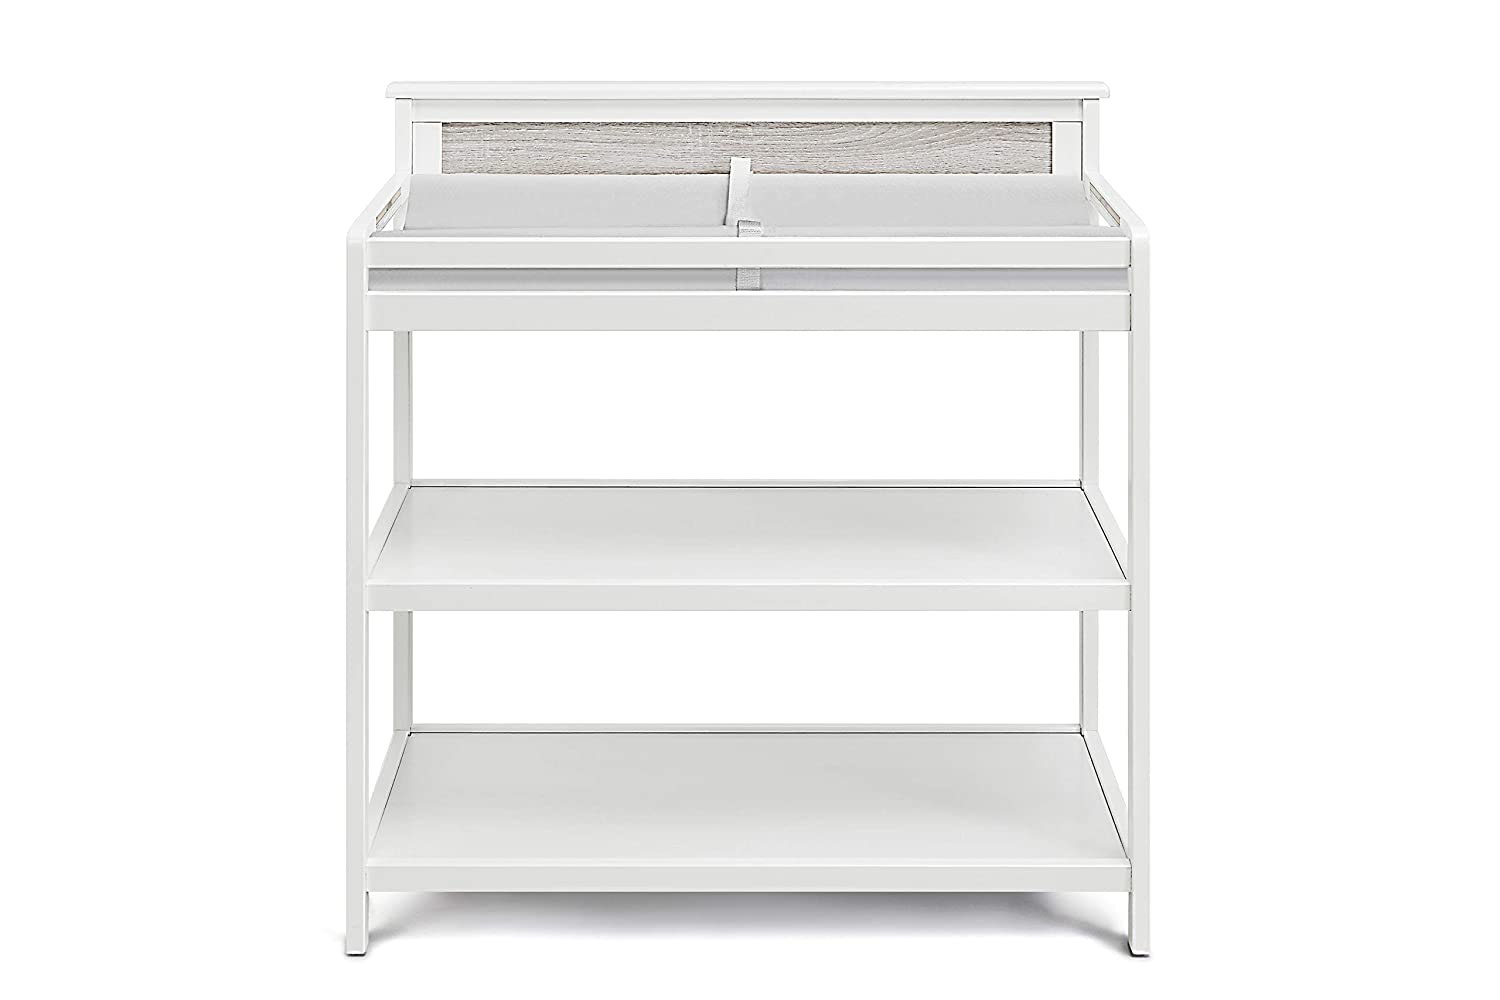 Suite Bebe - Connelly Changing free shipping Non Toxic Wood Table security White